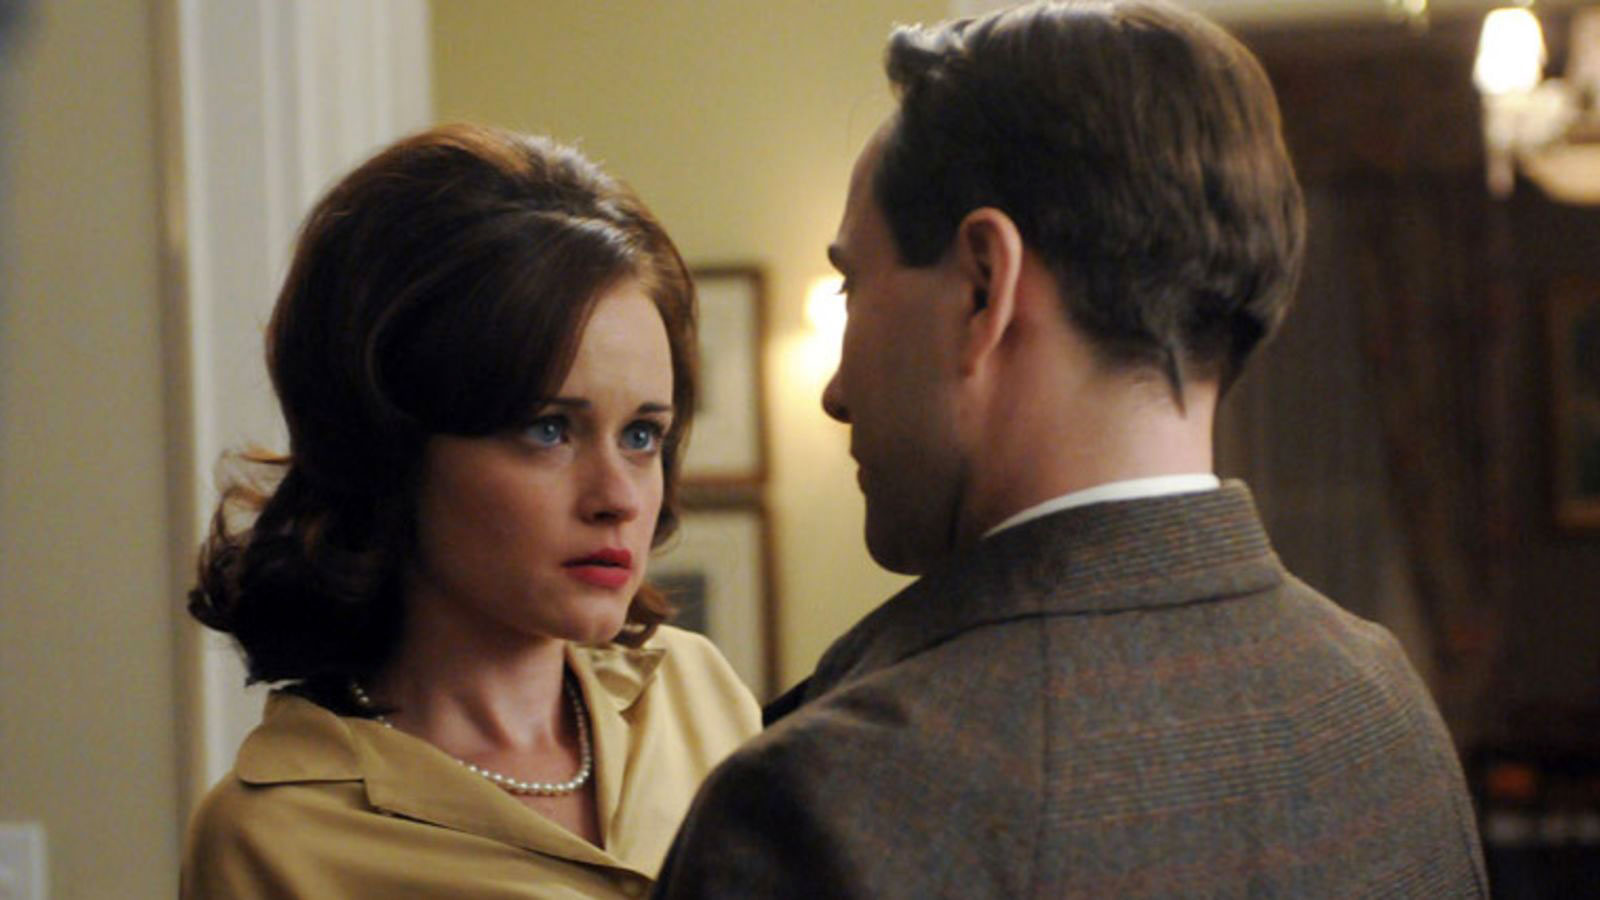 TV Couples Who Dated IRL Pete and Beth Mad Men - In Mad Men , Beth had an affair with Peter while she's married. However, in real life, Vincent Kartheiser and Alexis Bledel began quietly dating while filming the show.